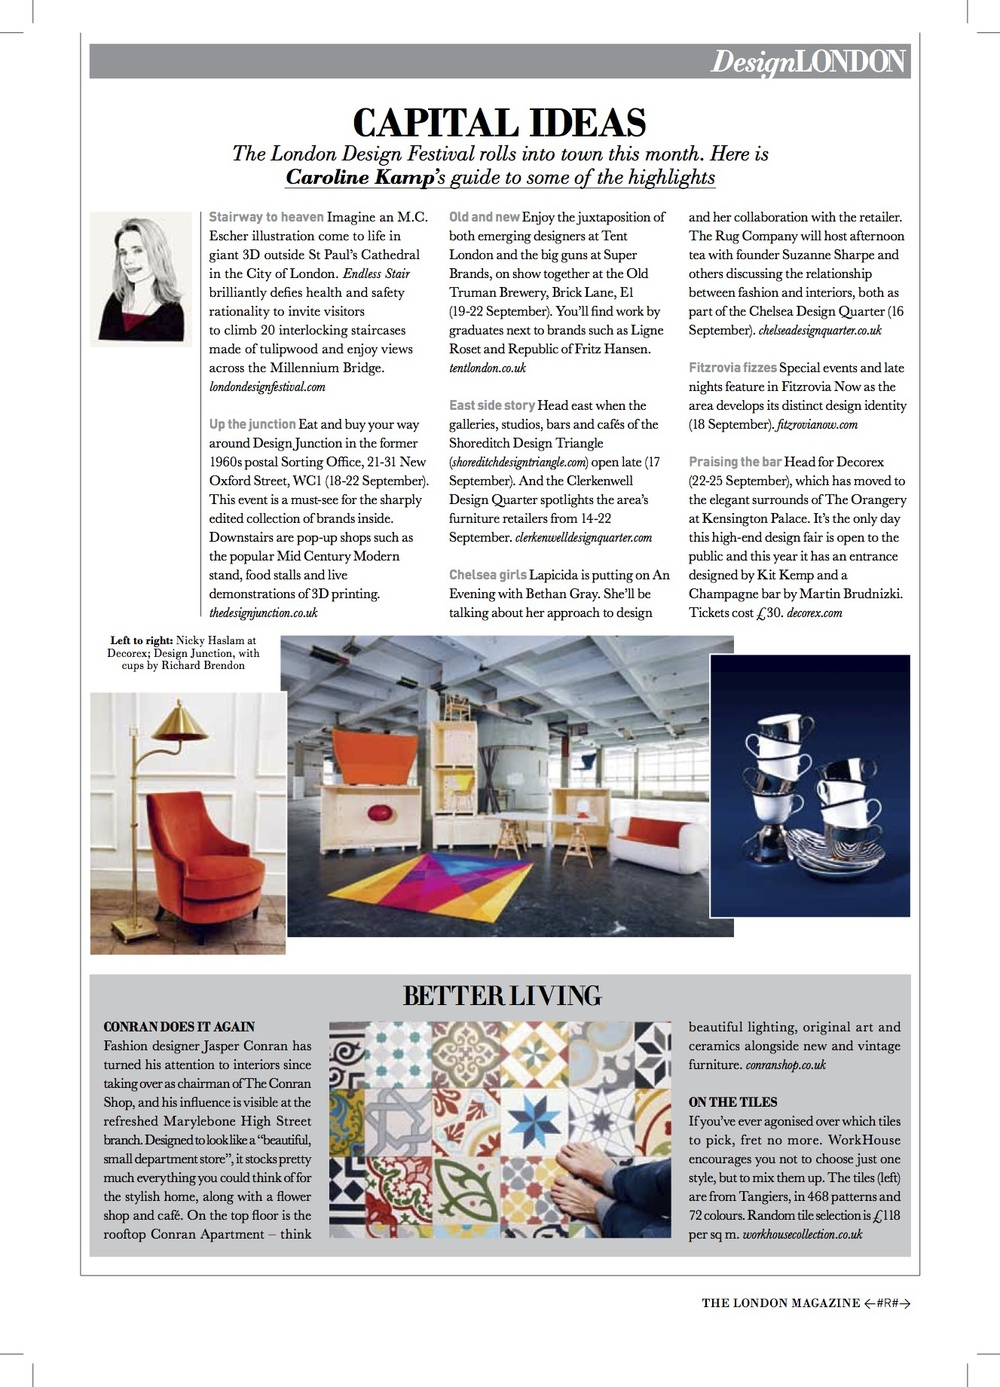 In the September issue of  The London Magazine  I talk about what to see at the  London Design Festival ; the refreshed  Conran Shop  in Marylebone with Jasper at the helm; and gorgeous patterned tiles from  WorkHouse . Click  here  to read online.